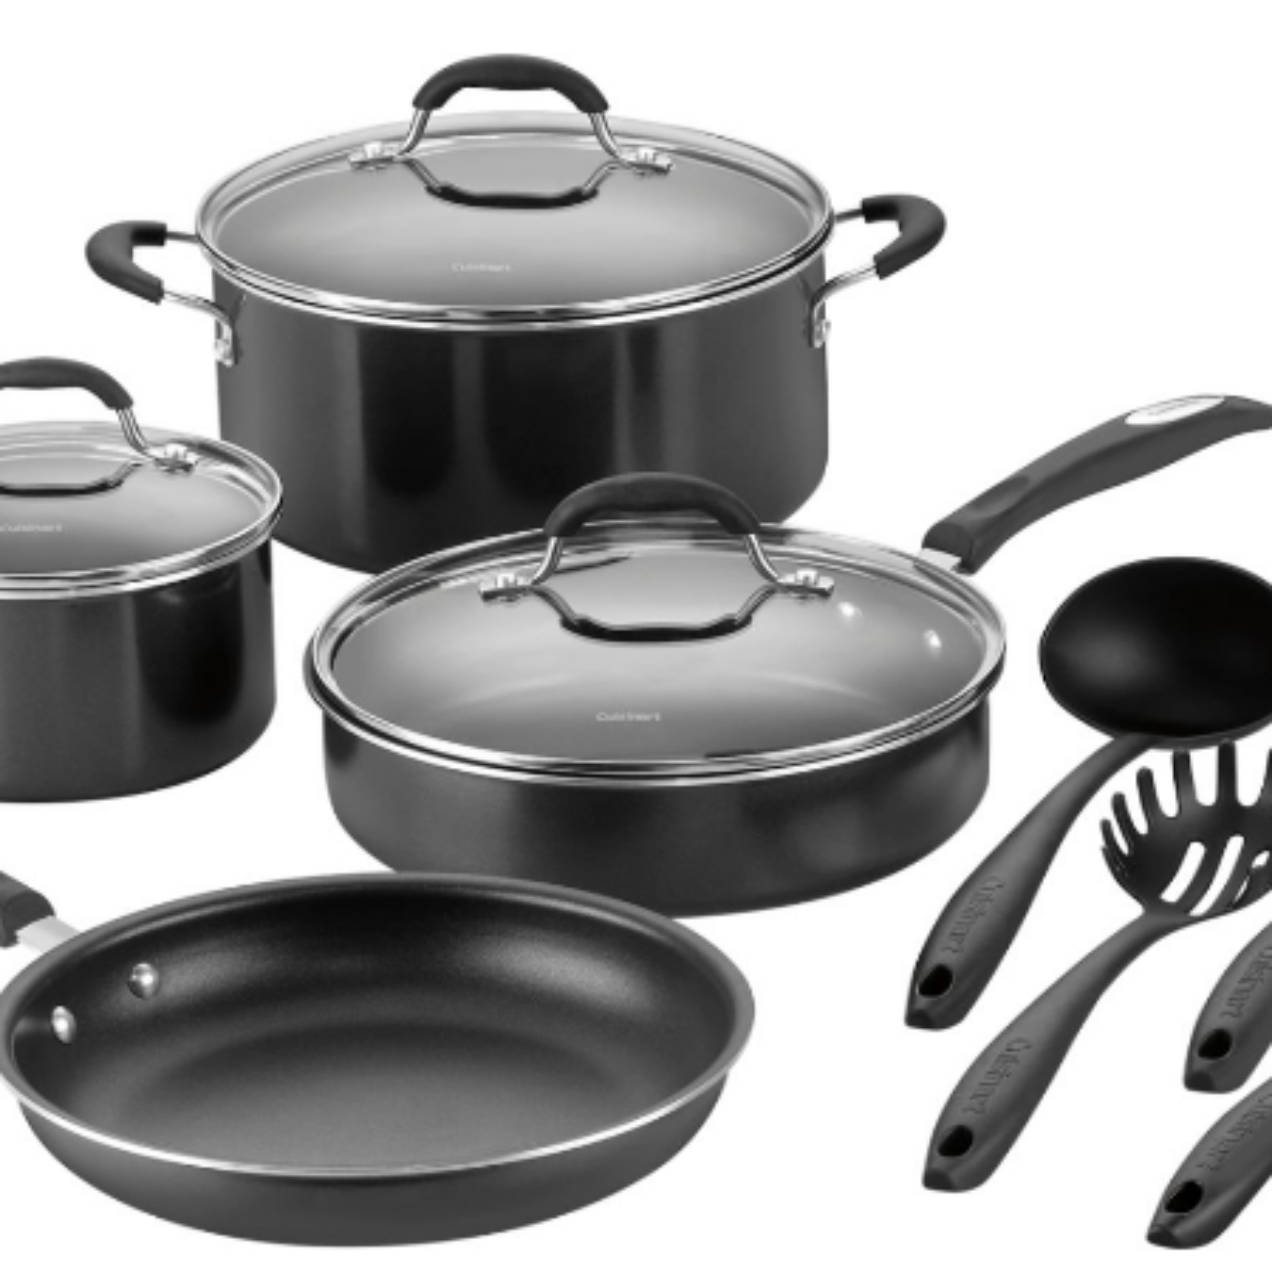 Cuisinart – 12-Piece Cookware Set 67% Off – Today Only!